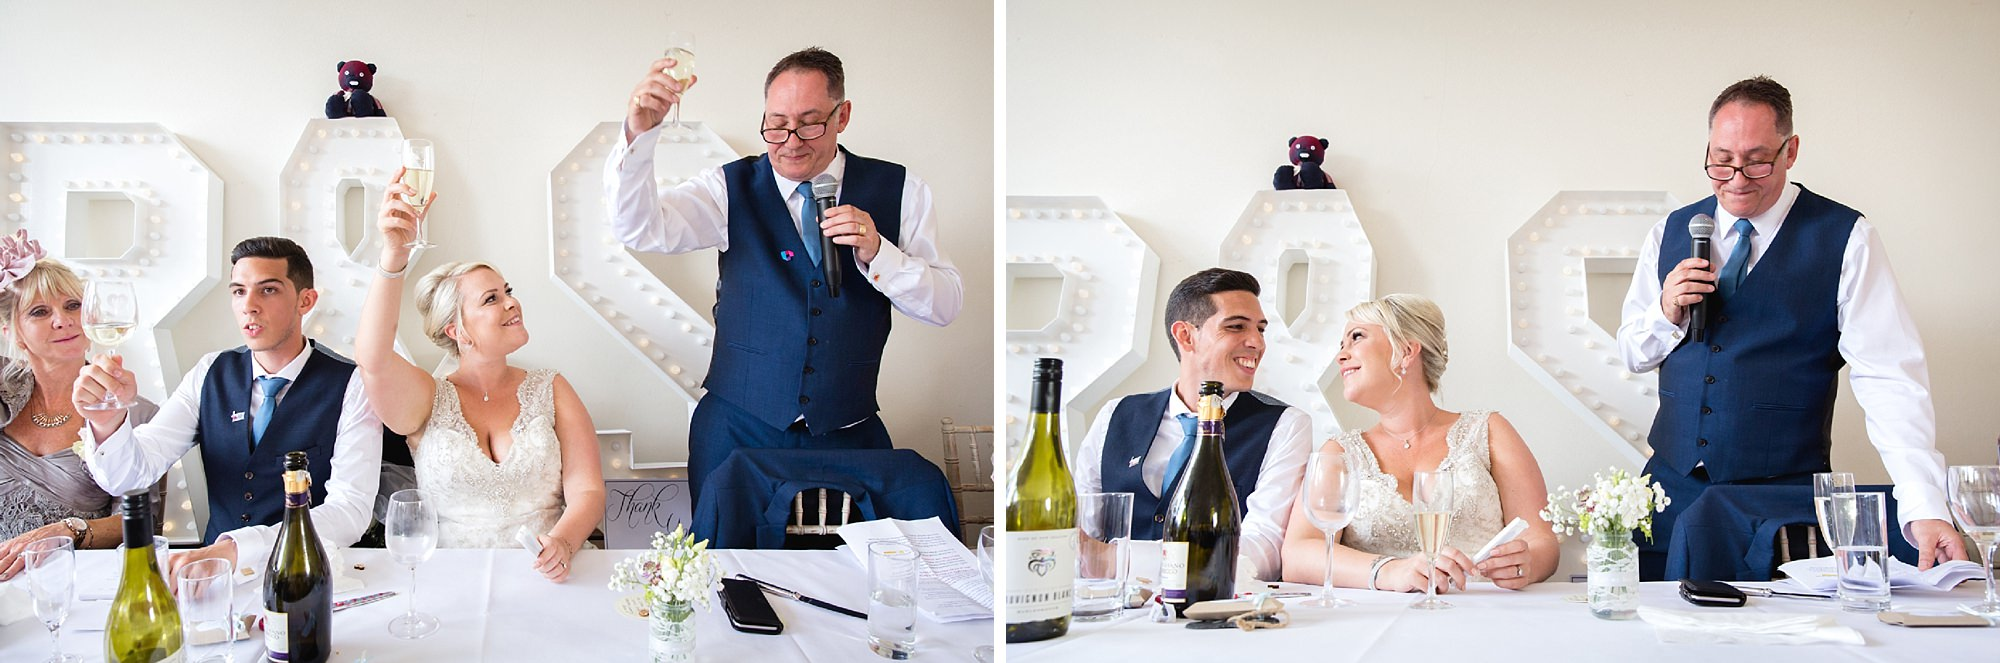 Bignor Park wedding photography bride and groom during speeches